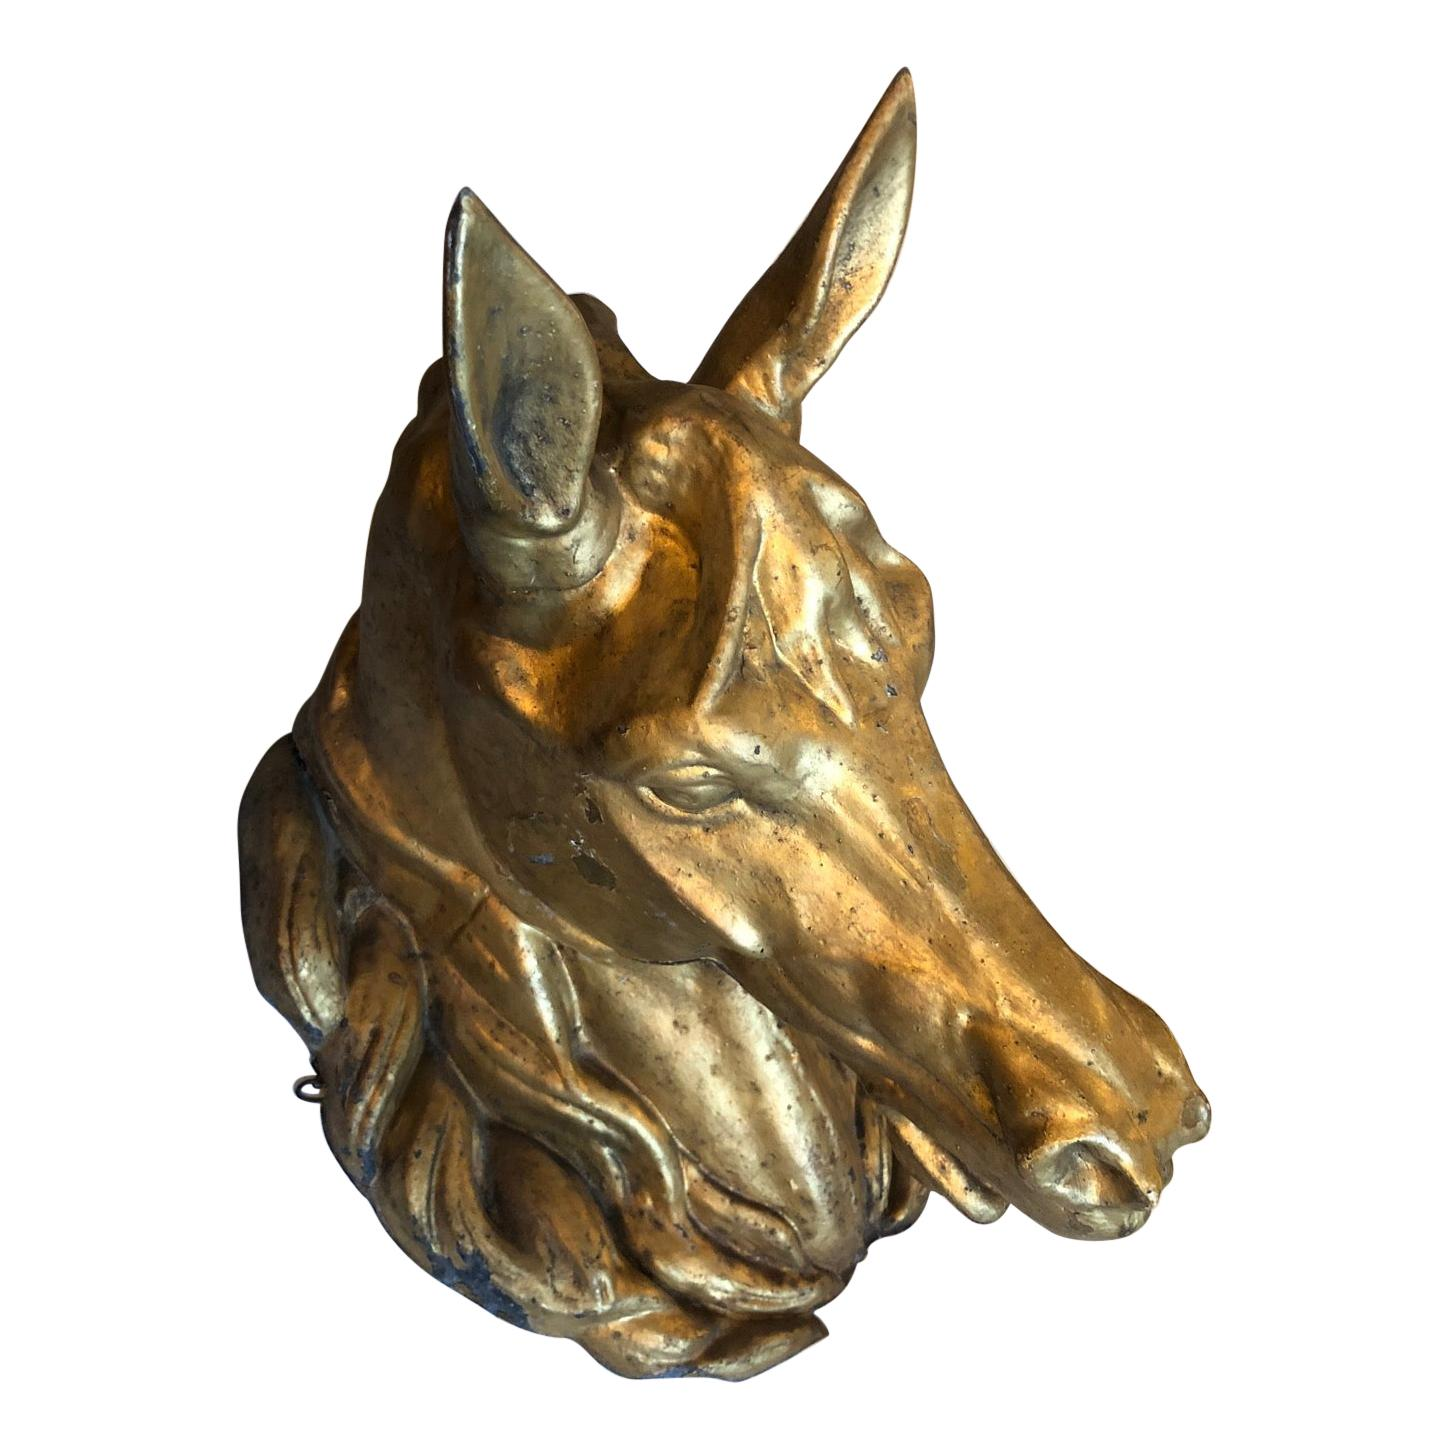 19th Century French Horse Wall Mount Sculpture